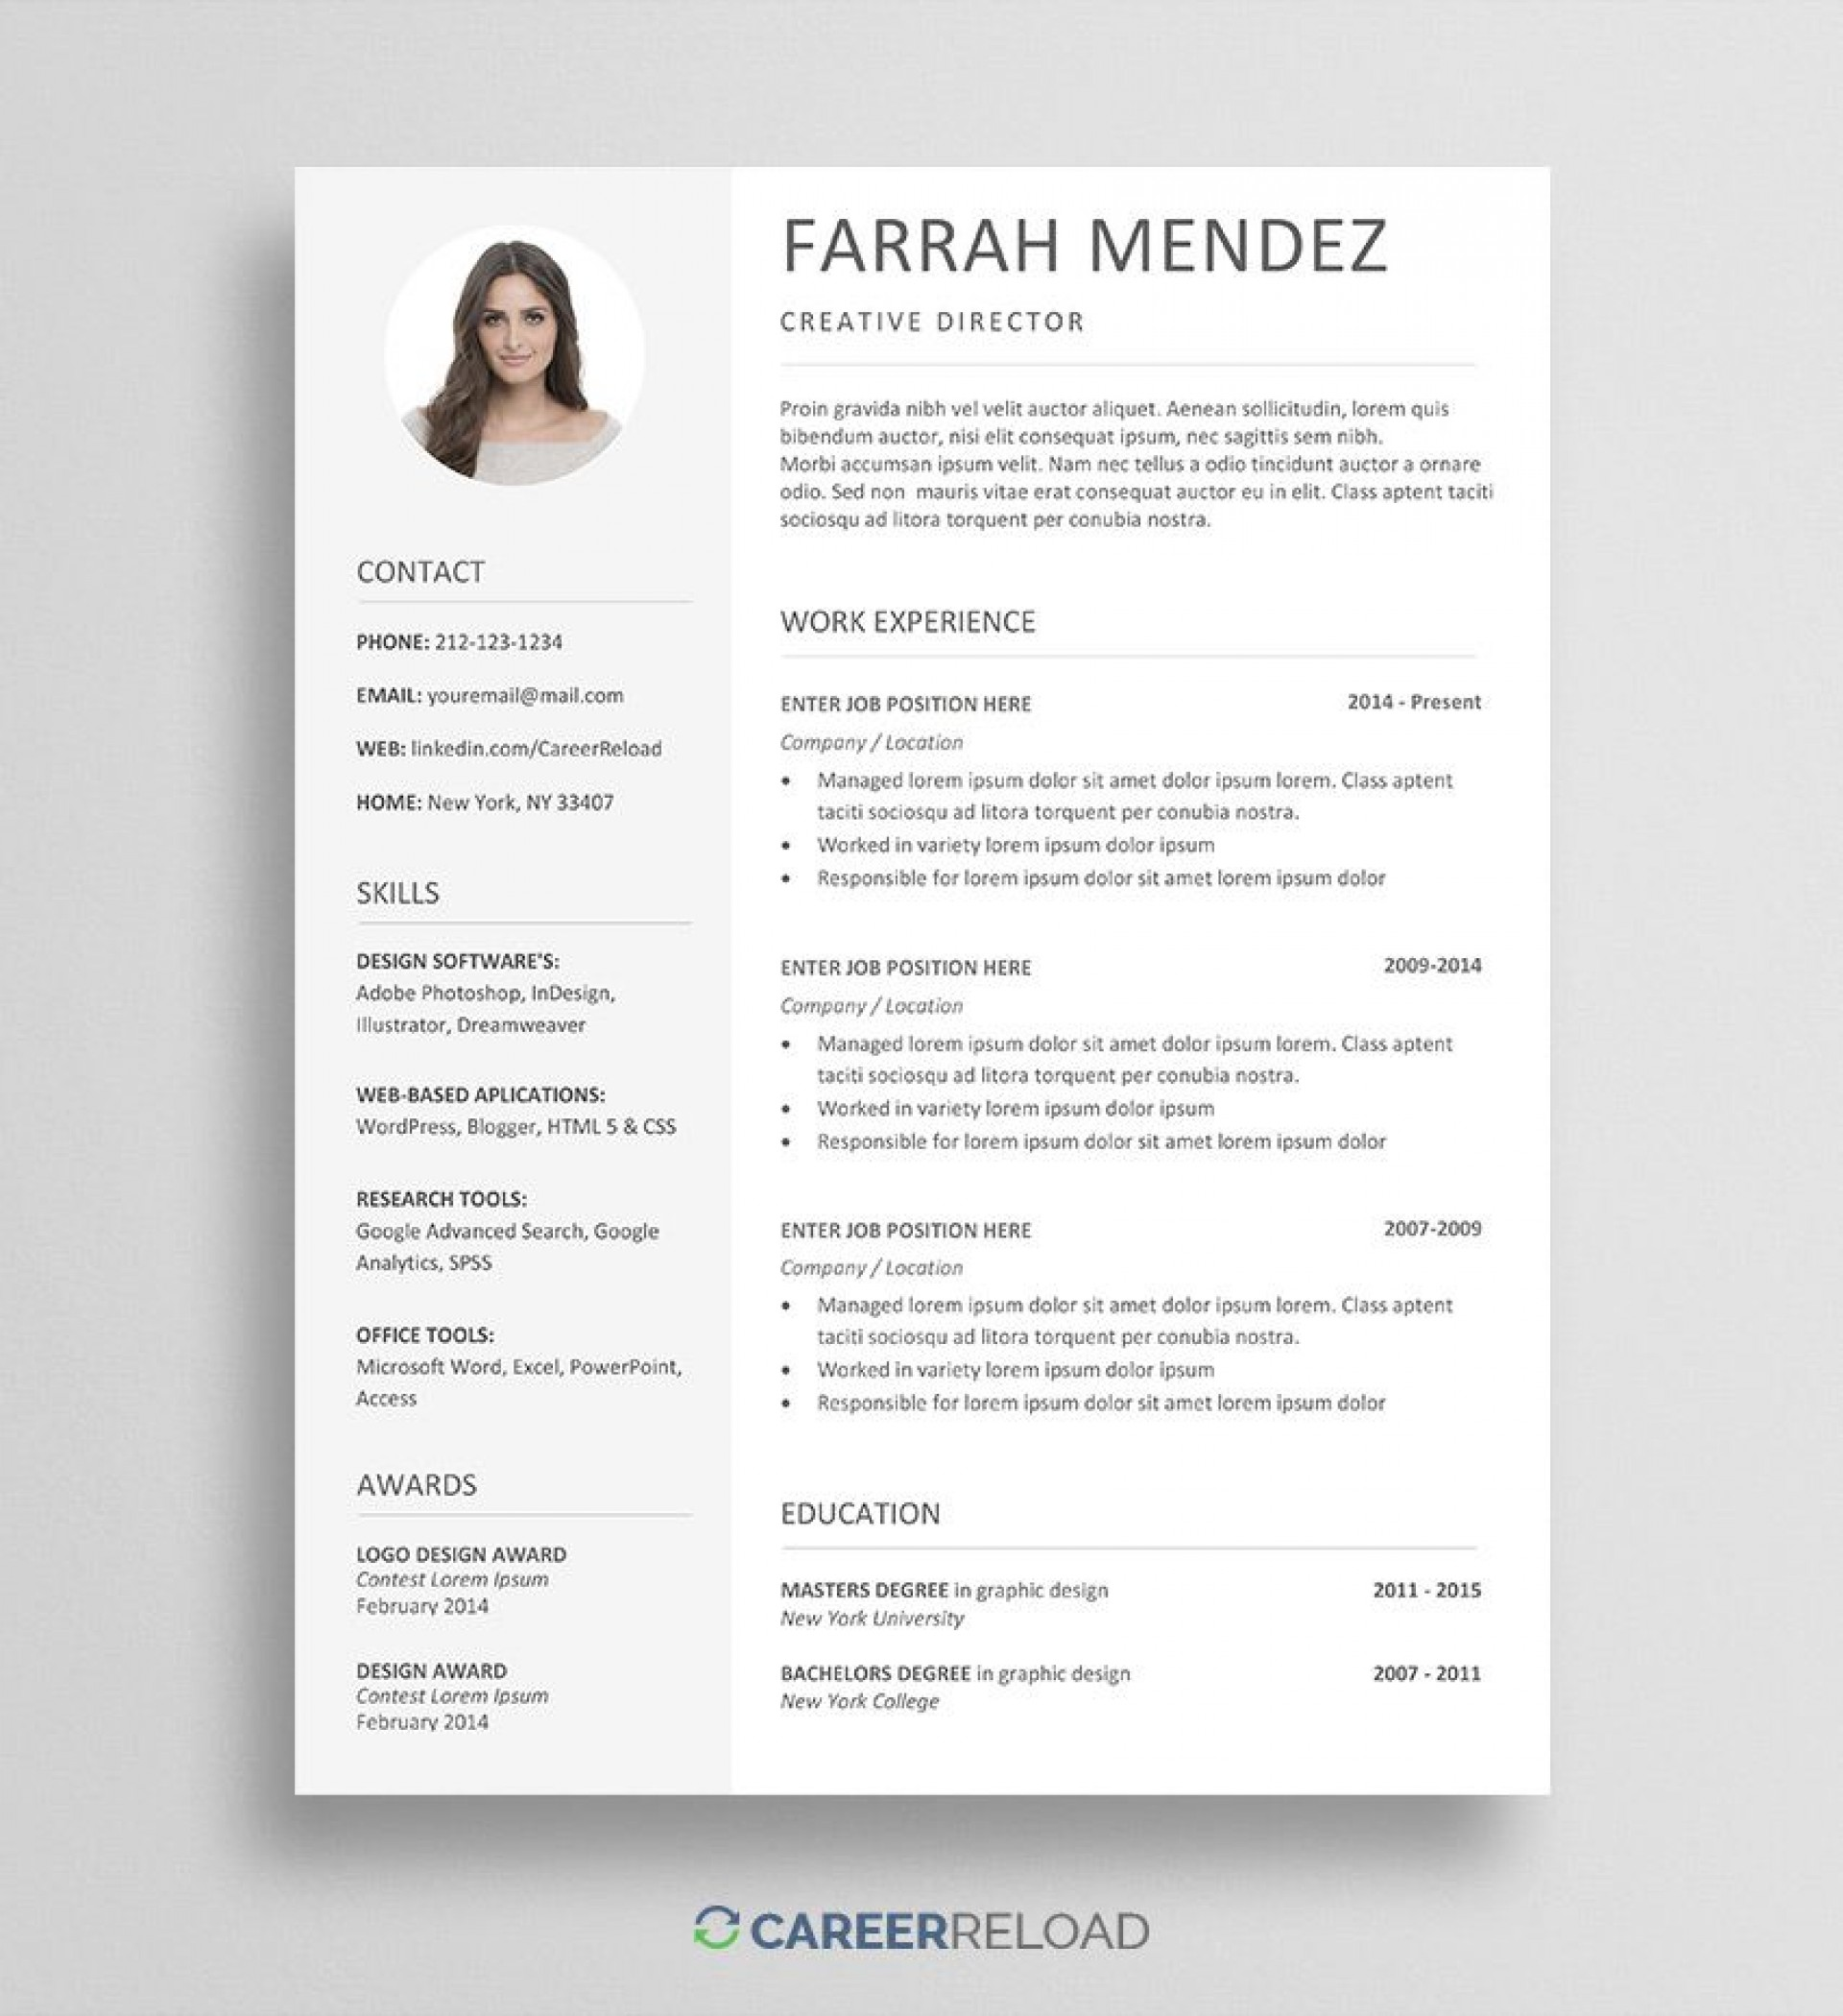 003 Formidable Download Resume Template Word 2007 Highest Clarity 1920